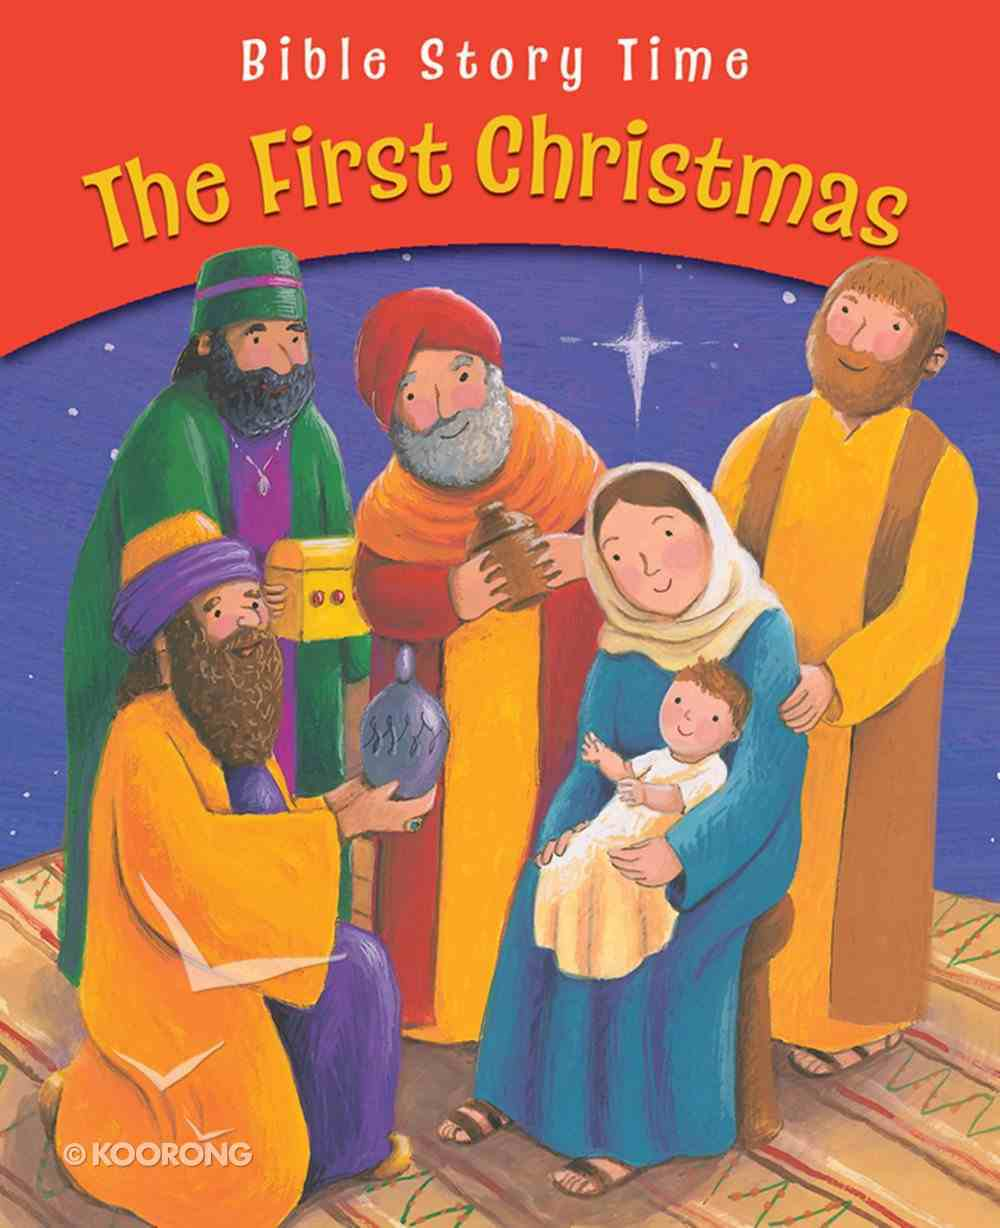 The First Christmas (Bible Story Time New Testament Series) eBook